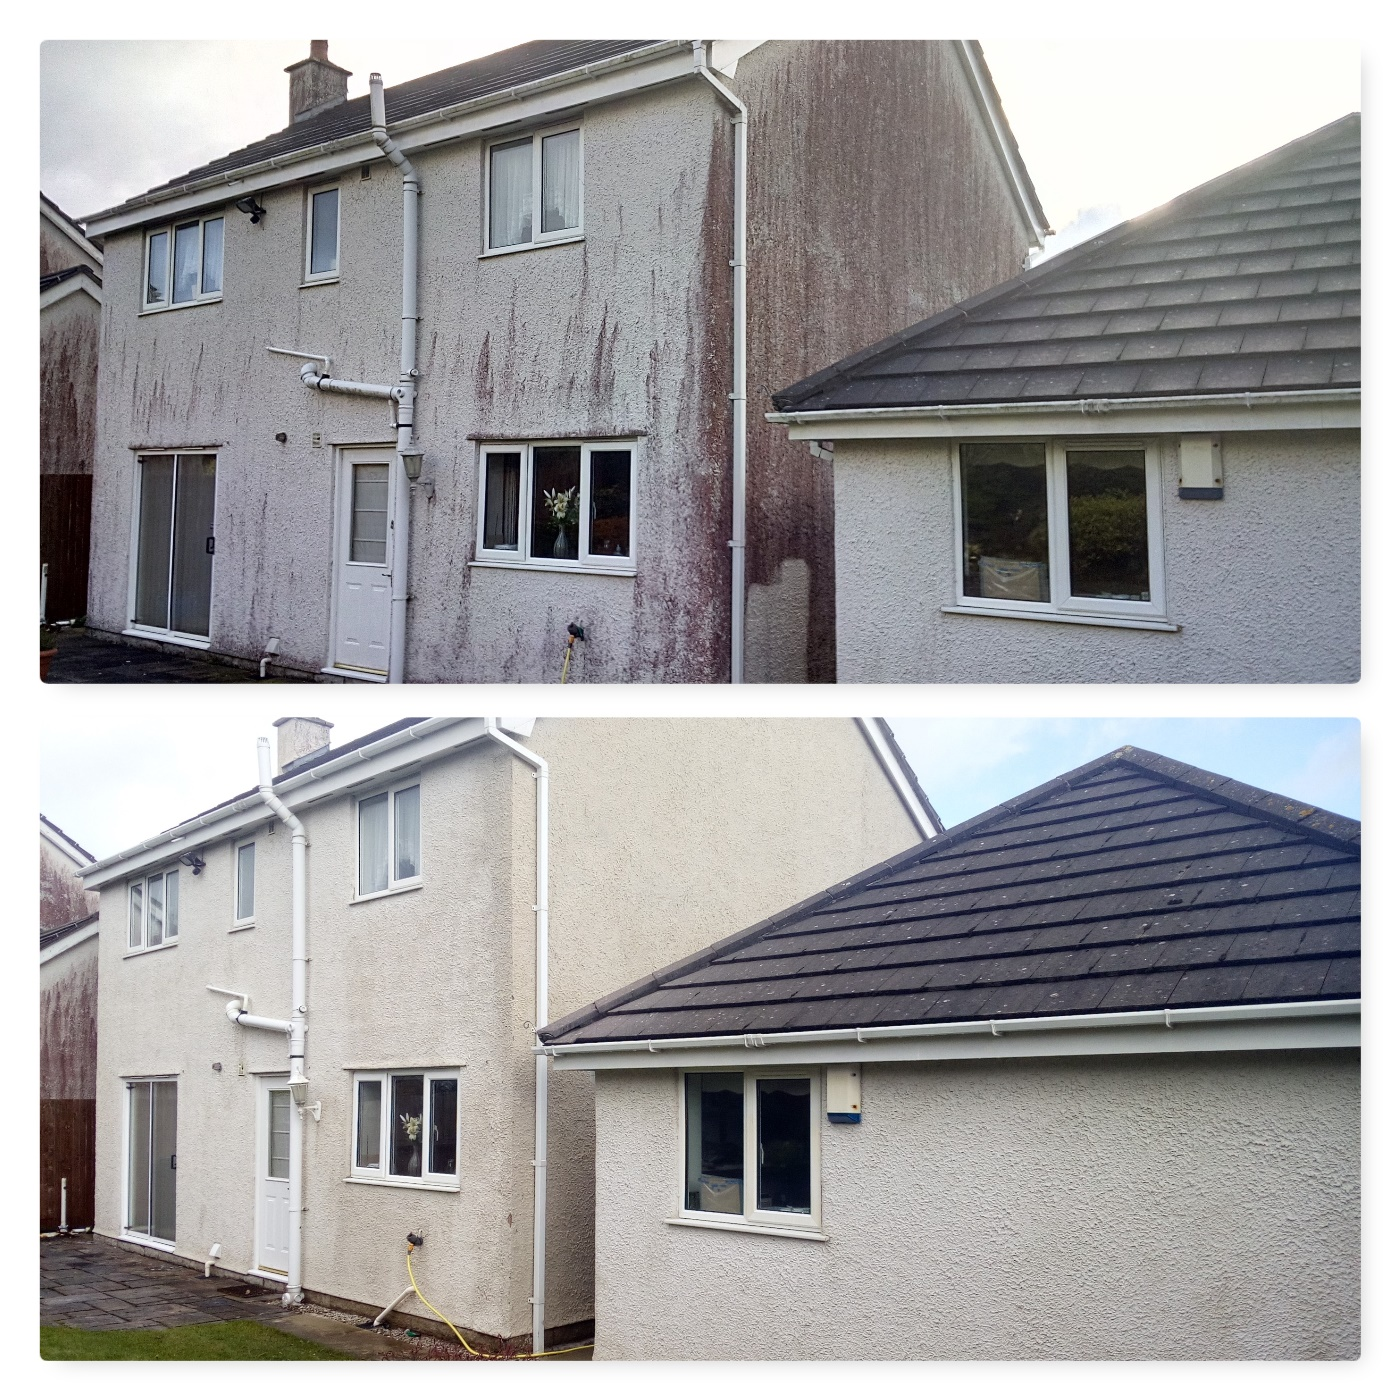 images of How to Remove stains from render www.cleaning-service.uk.com